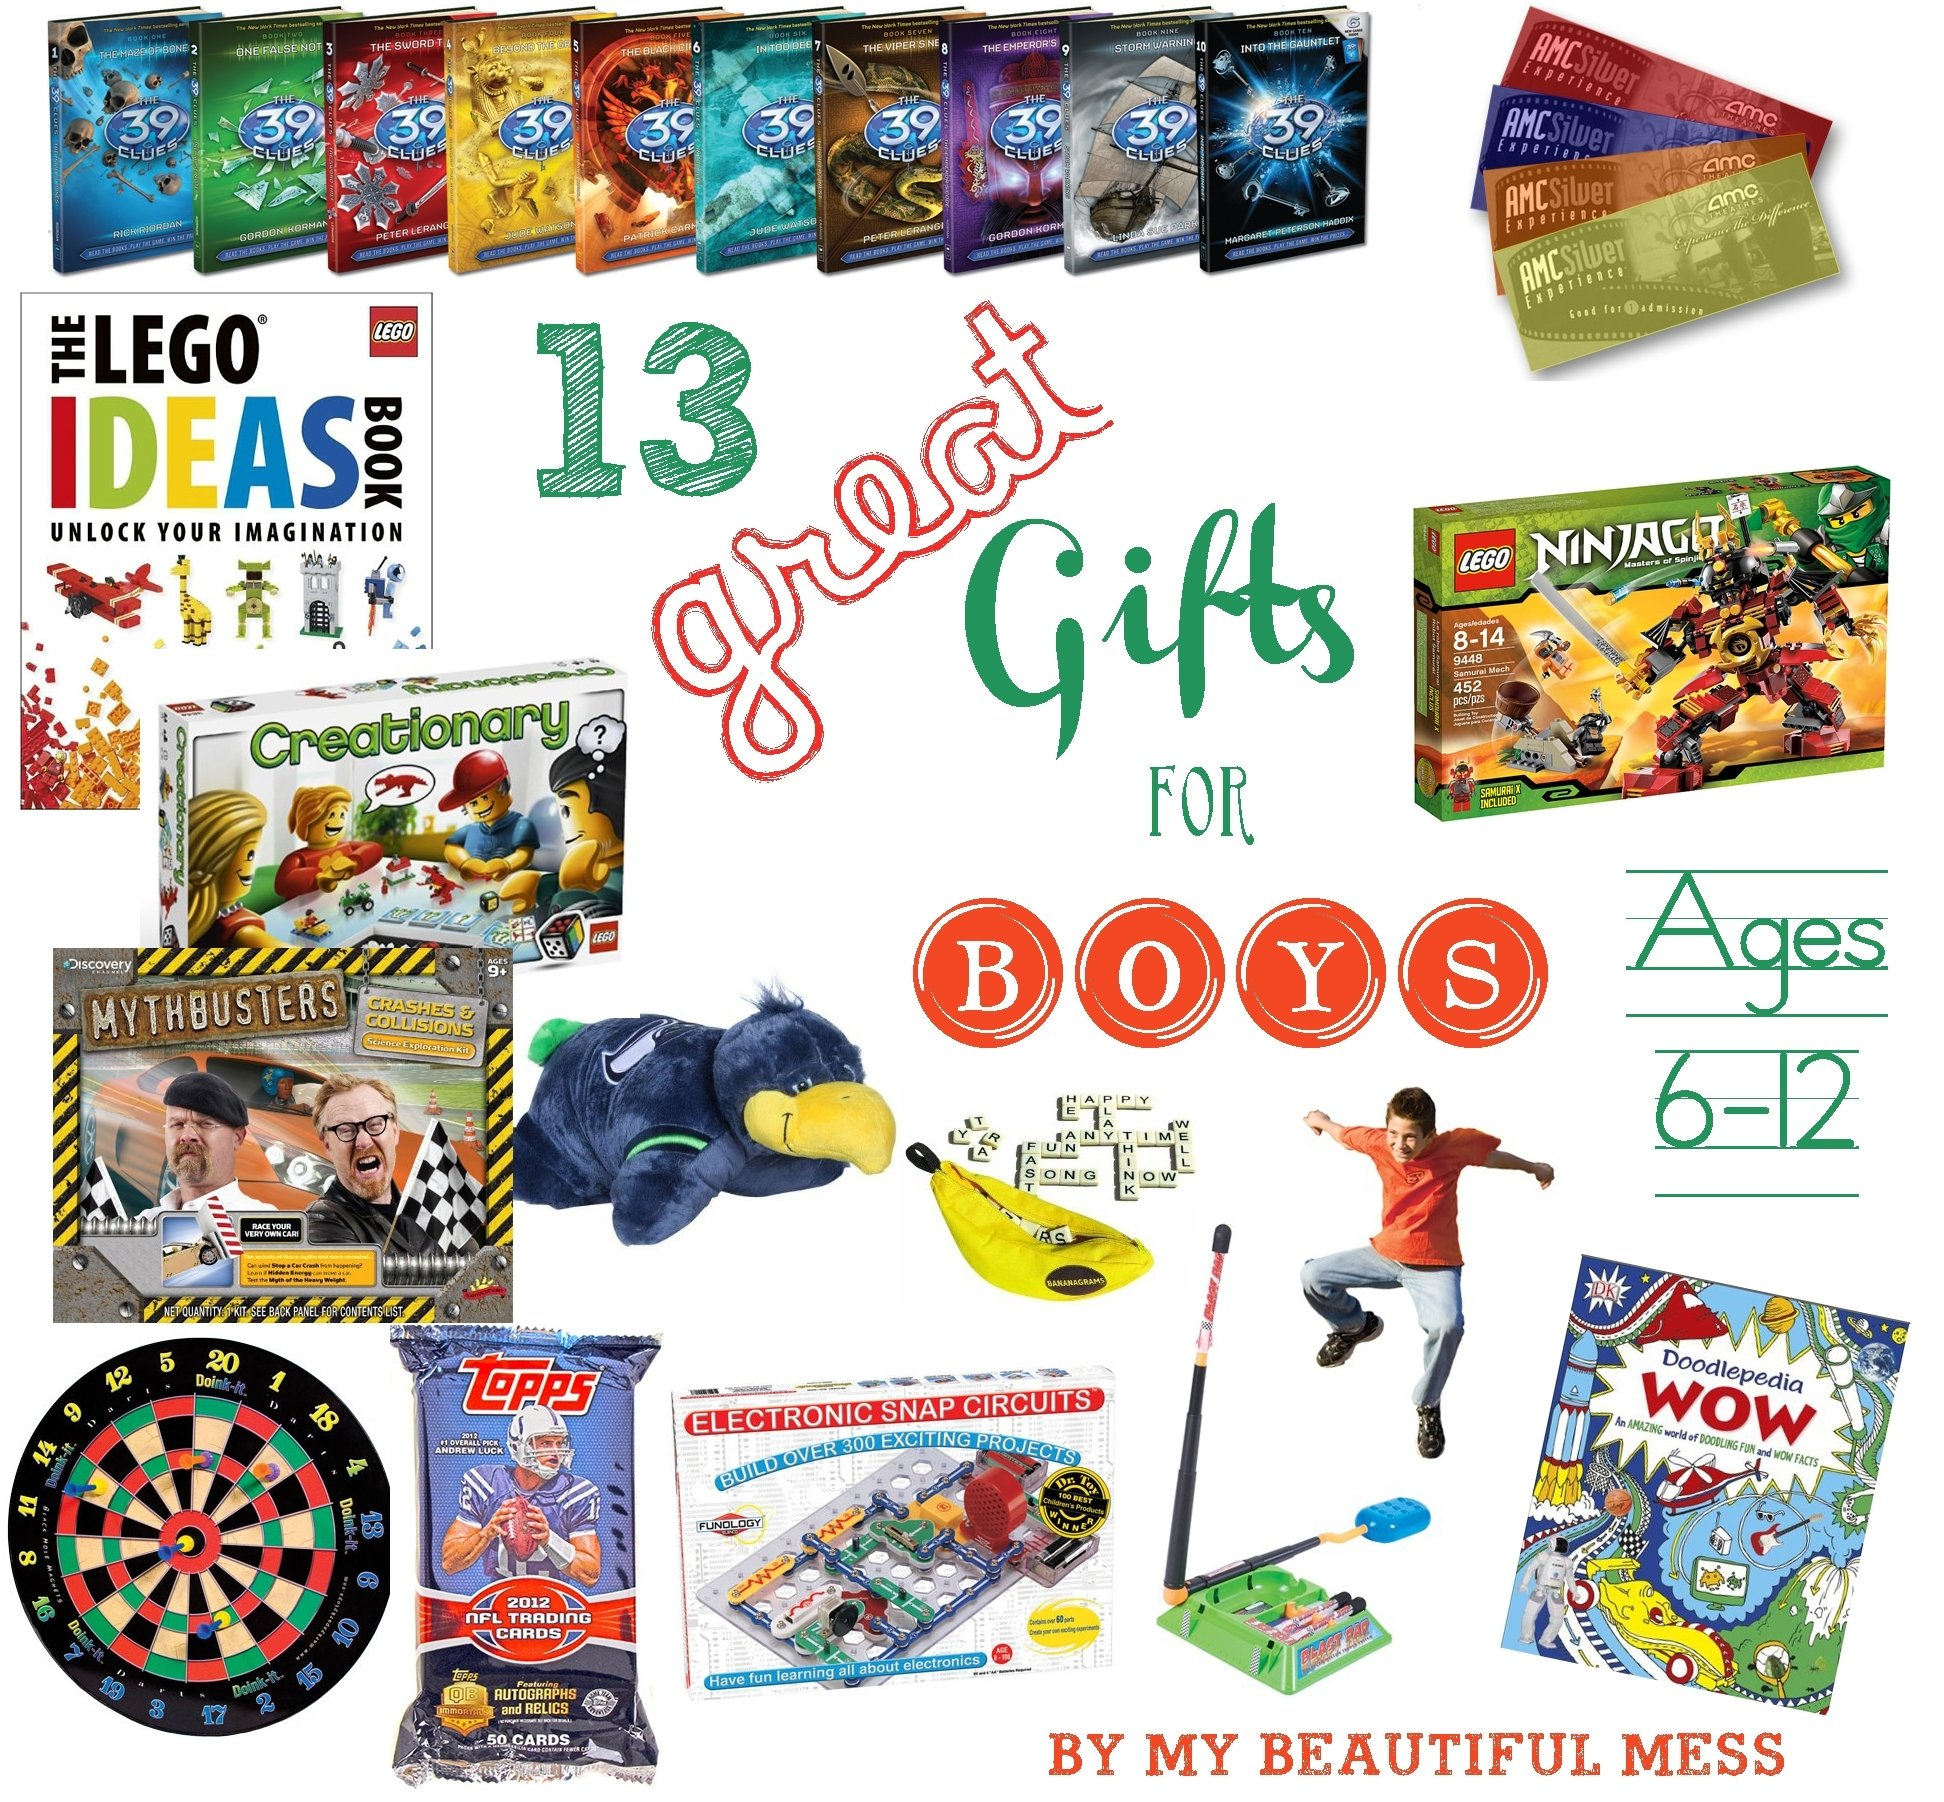 10 Most Popular 6 Year Old Boy Birthday Gift Ideas 13 great gift ideas for grade school aged boys ages 6 12 6